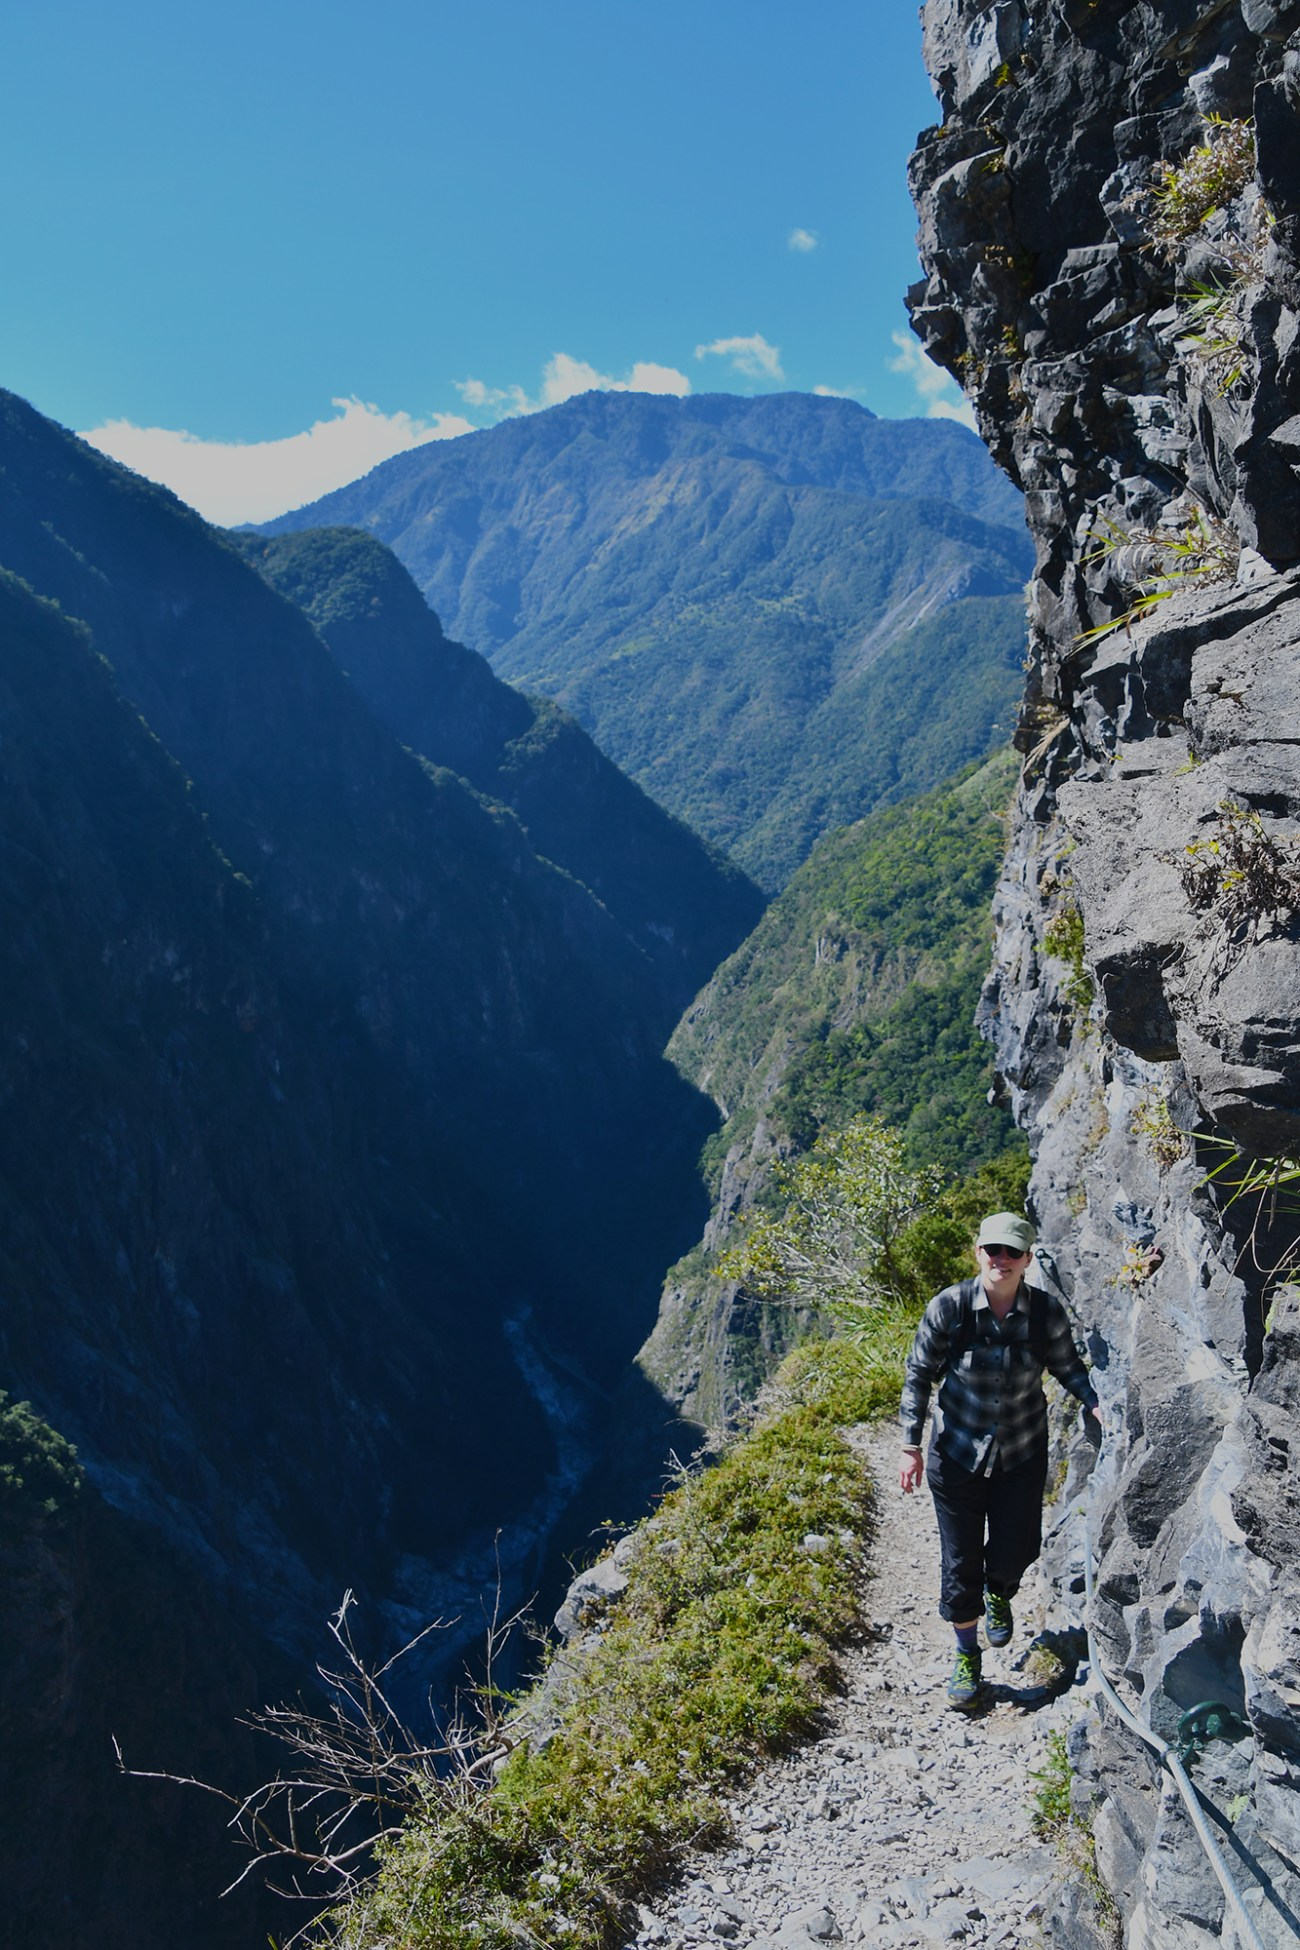 Tanja Hester, author of Work Optional and Our Next Life, on the Jhuilu Old Trail in Taroko Gorge, Taiwan